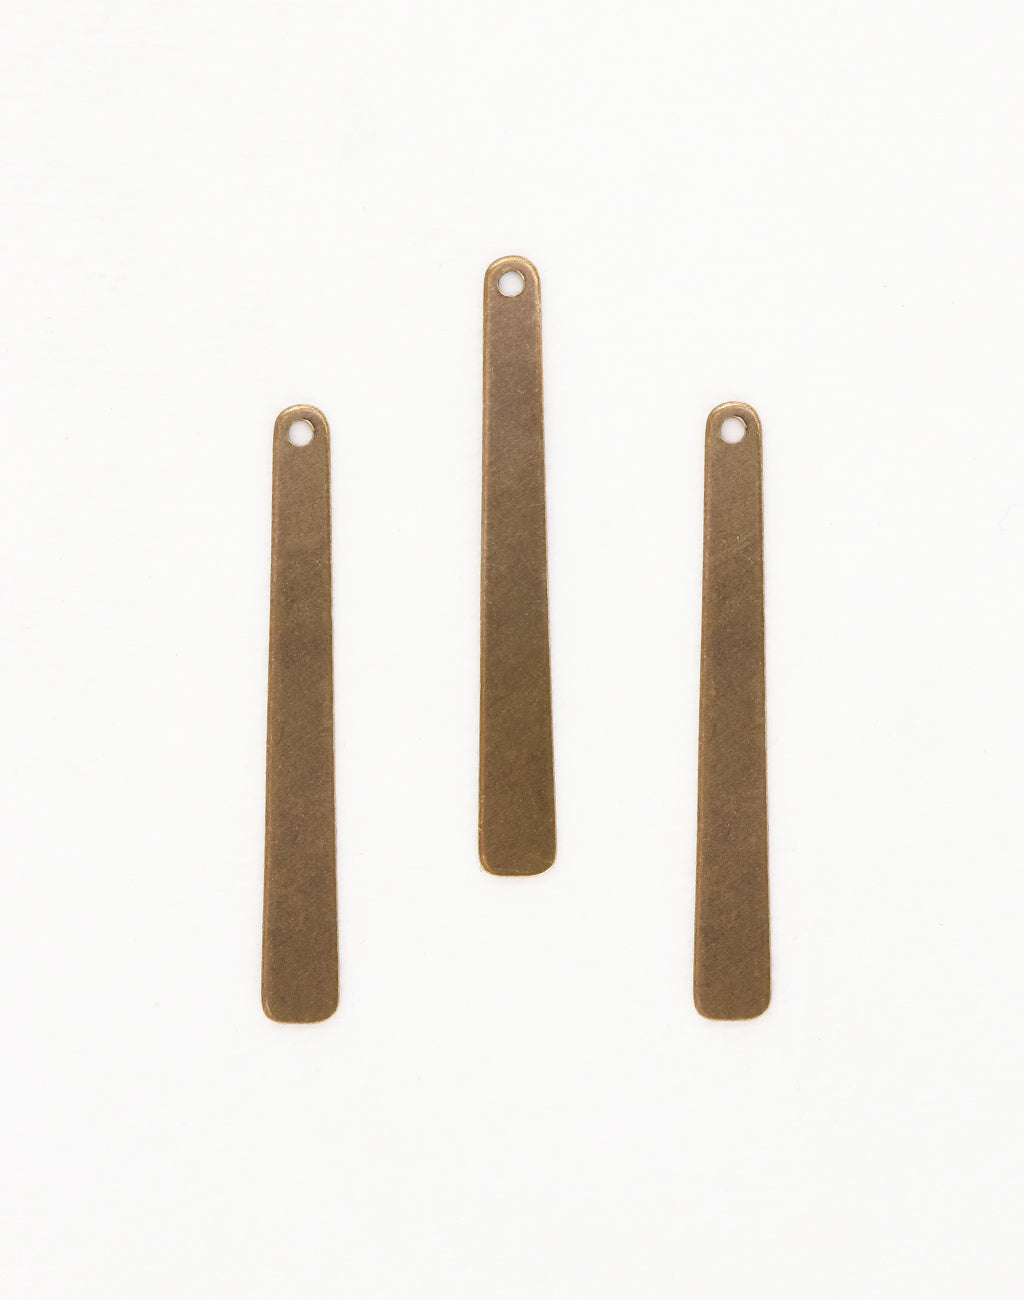 Tapered, 40x5mm, 23ga, (3pc)